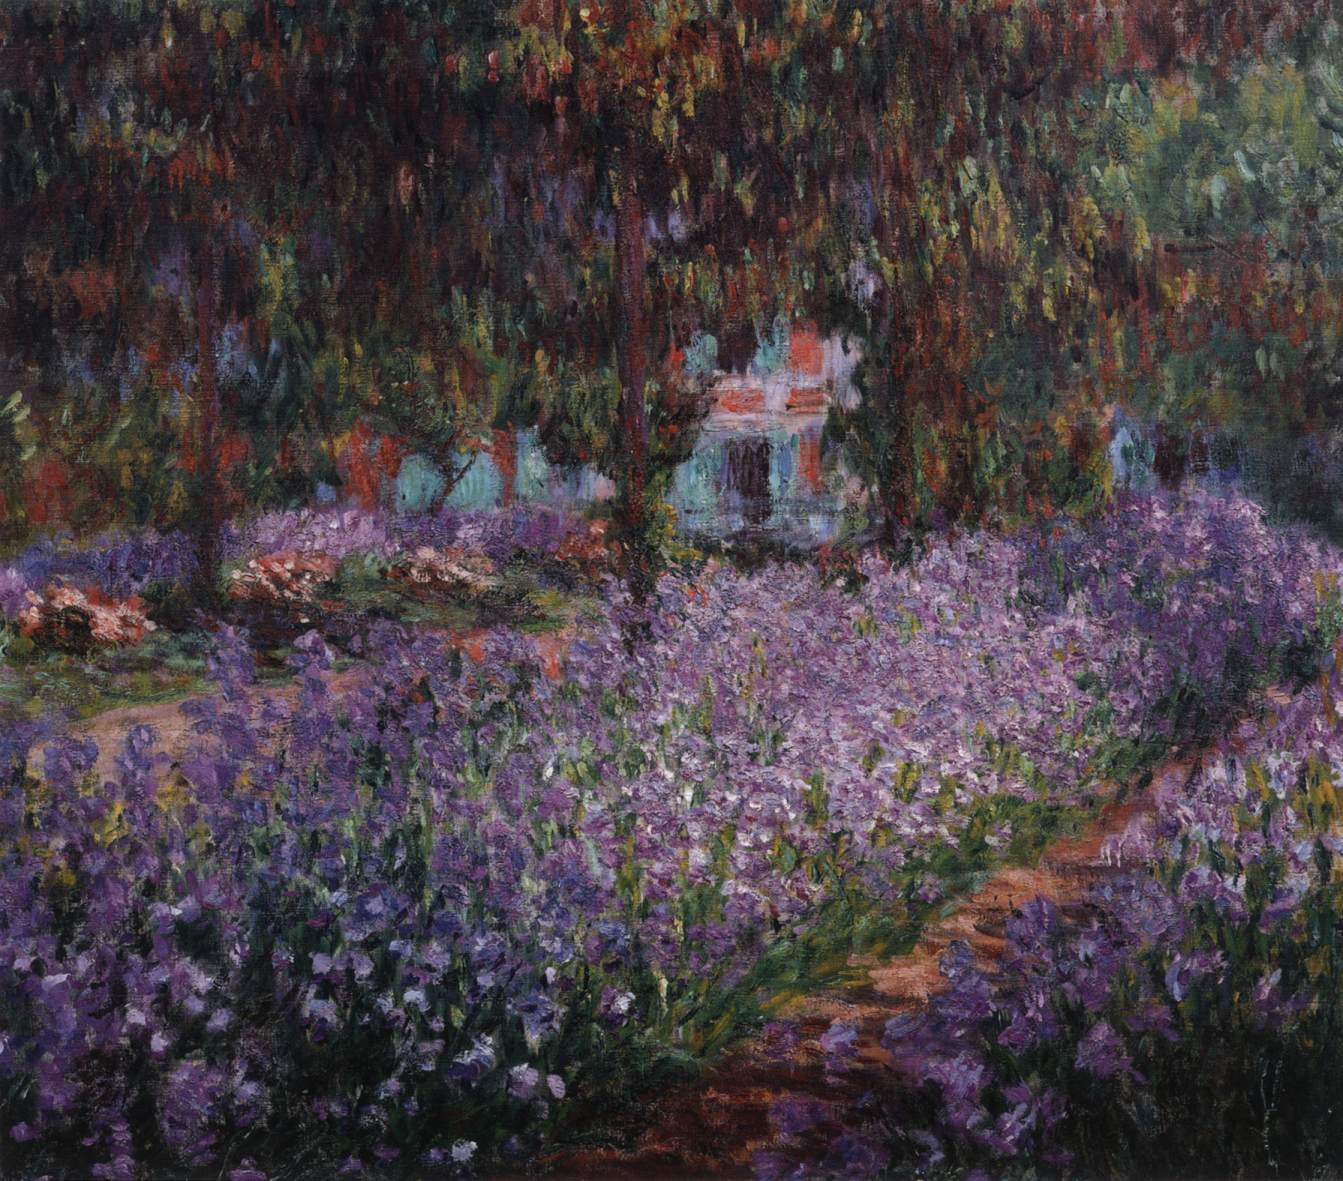 Irises in monet 39 s garden at giverny by monet claude for Aubade jardin d iris